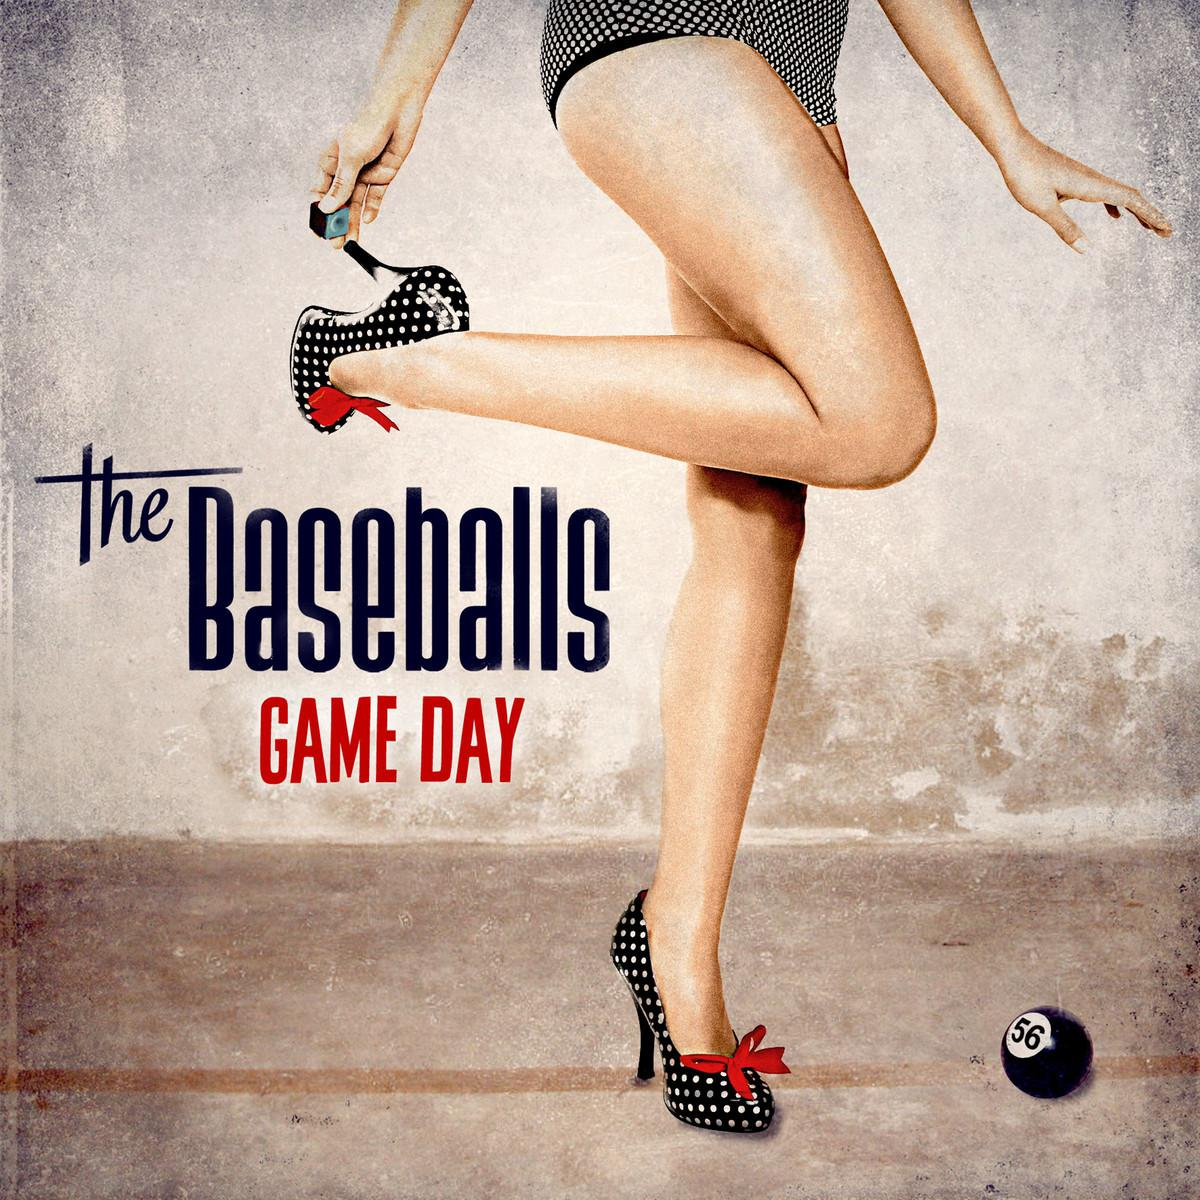 The Baseballs - Game Day (2014)